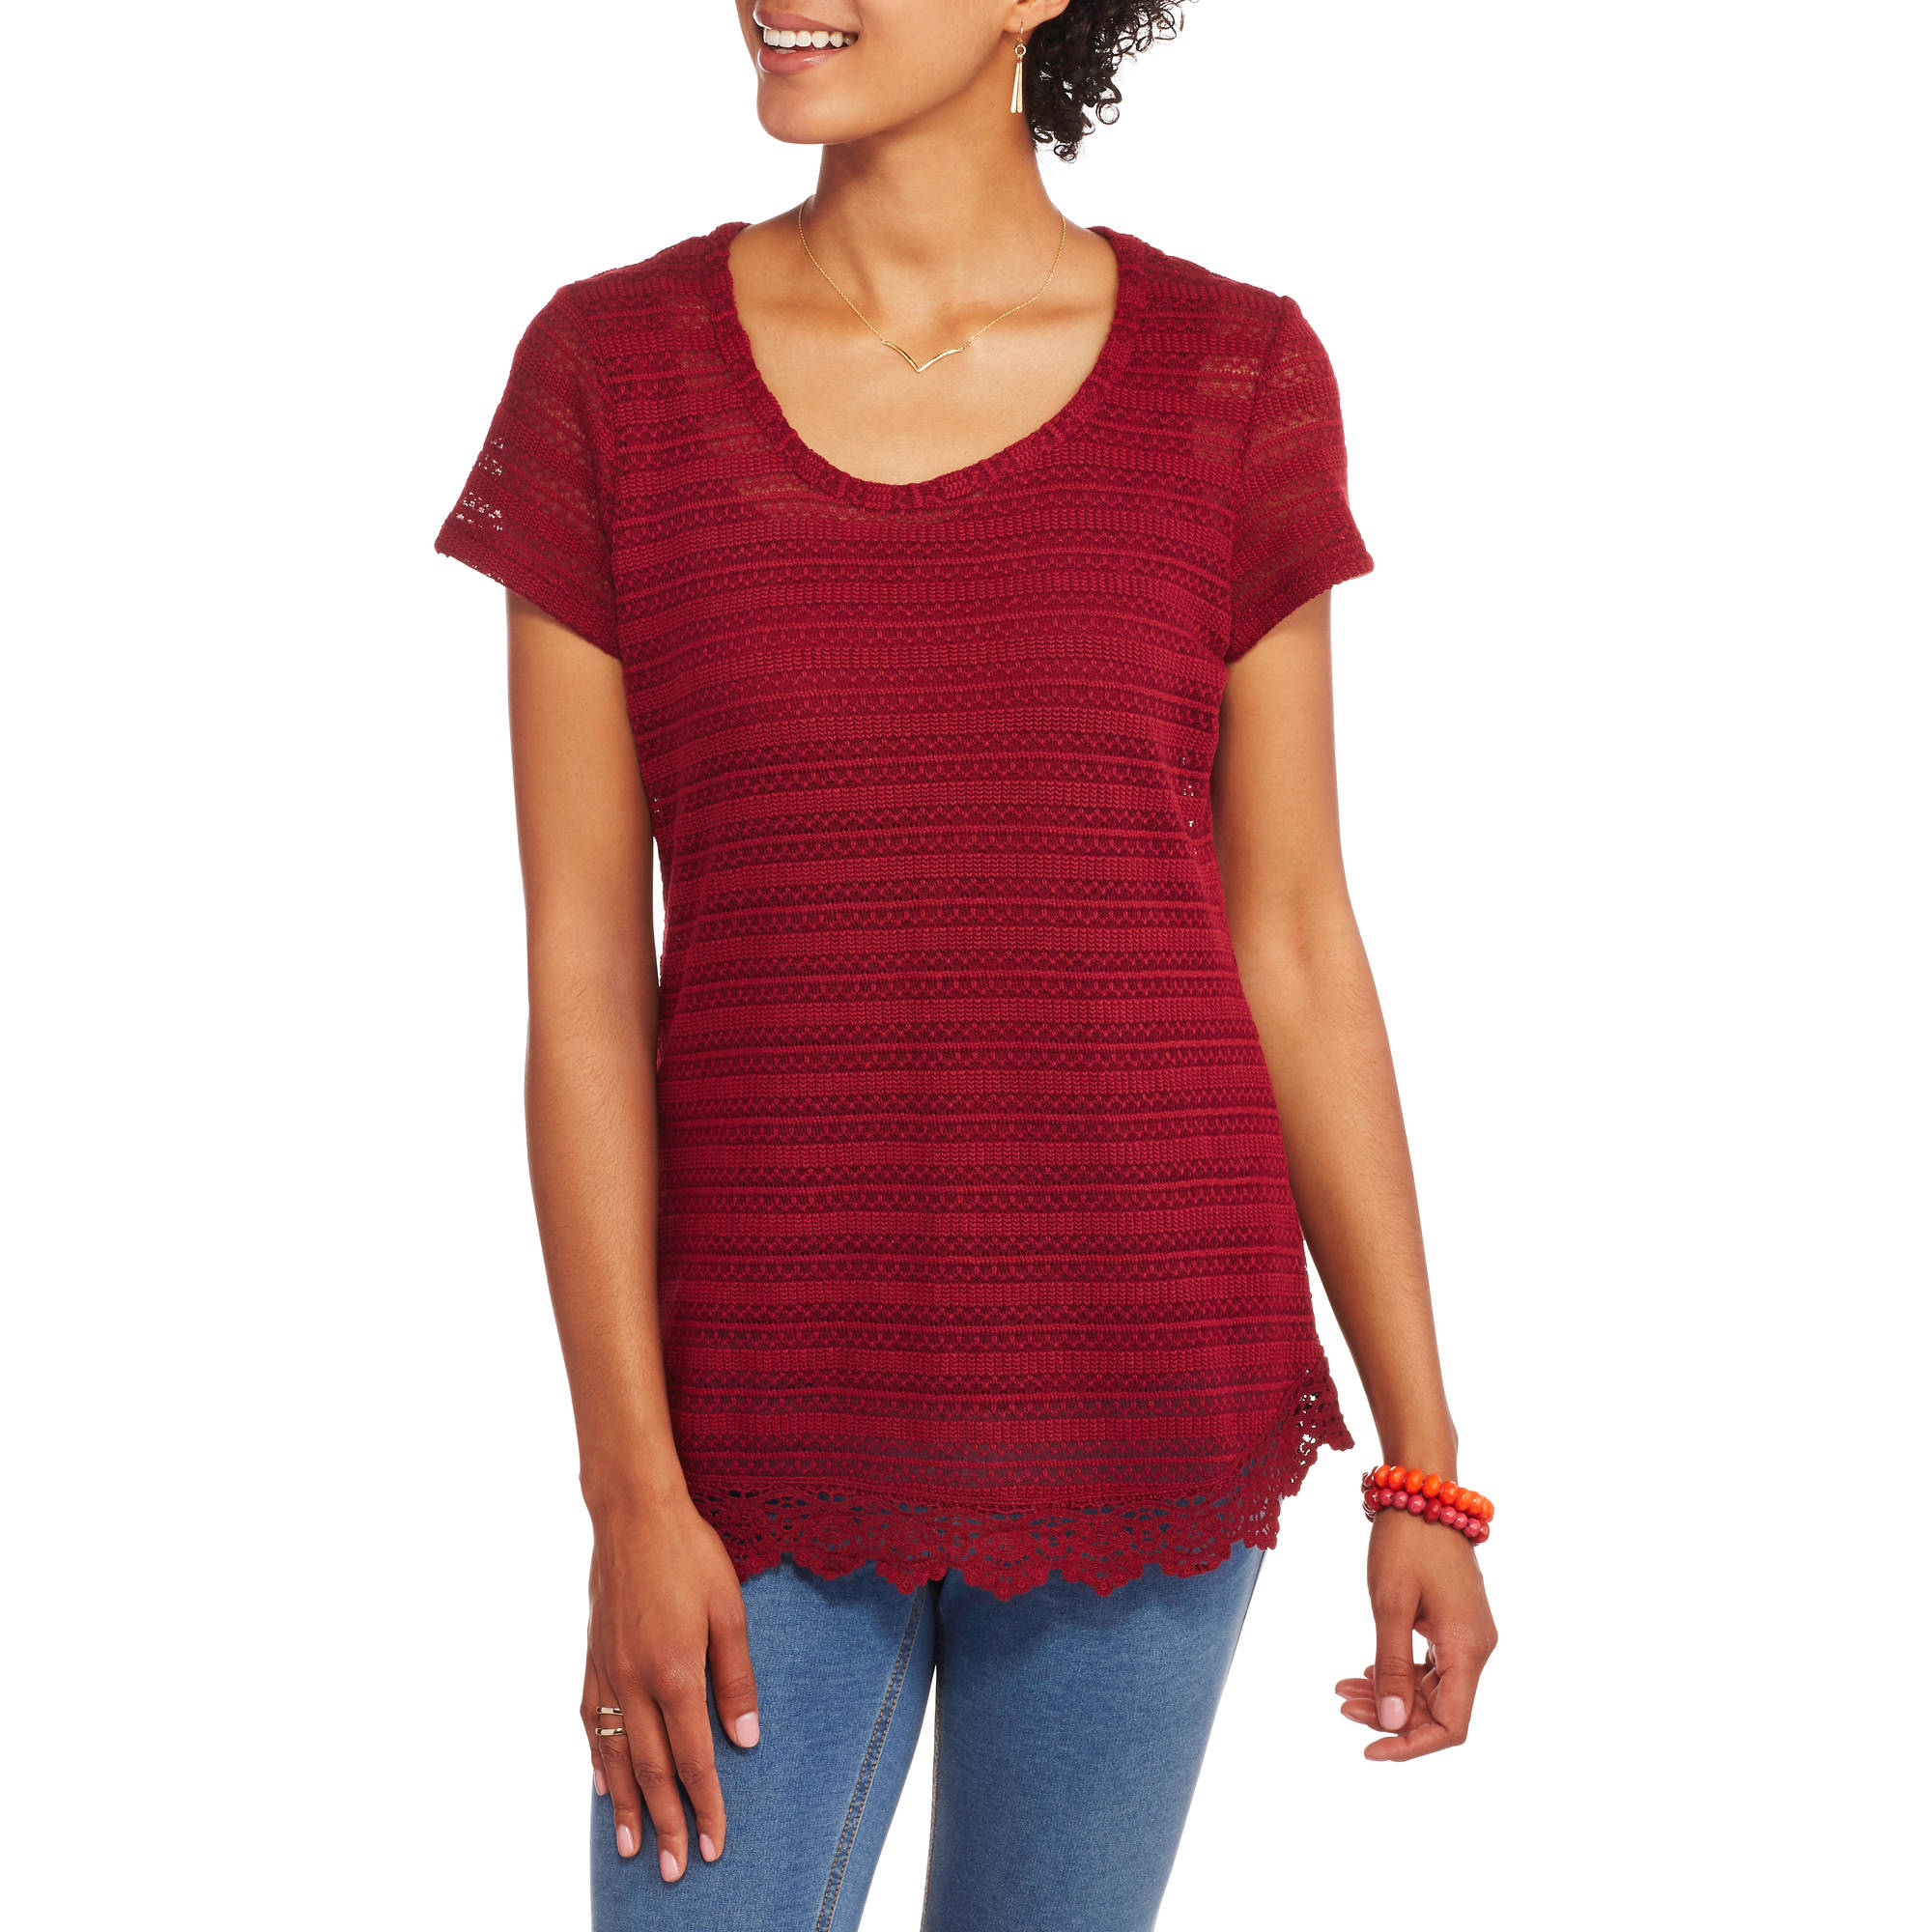 Absolutely Famous Women's Striped 2fer Top with Crochet Trim